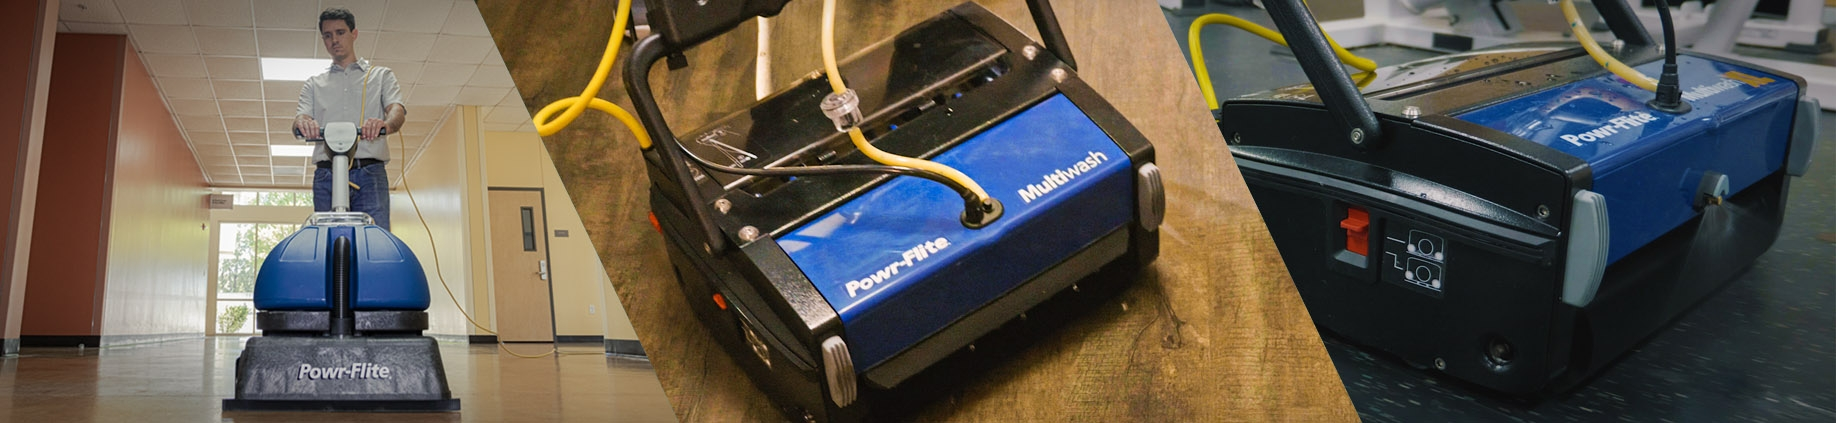 Powr-Flite powerful floor scrubbers. You'll love saving $25 off $250 this month!